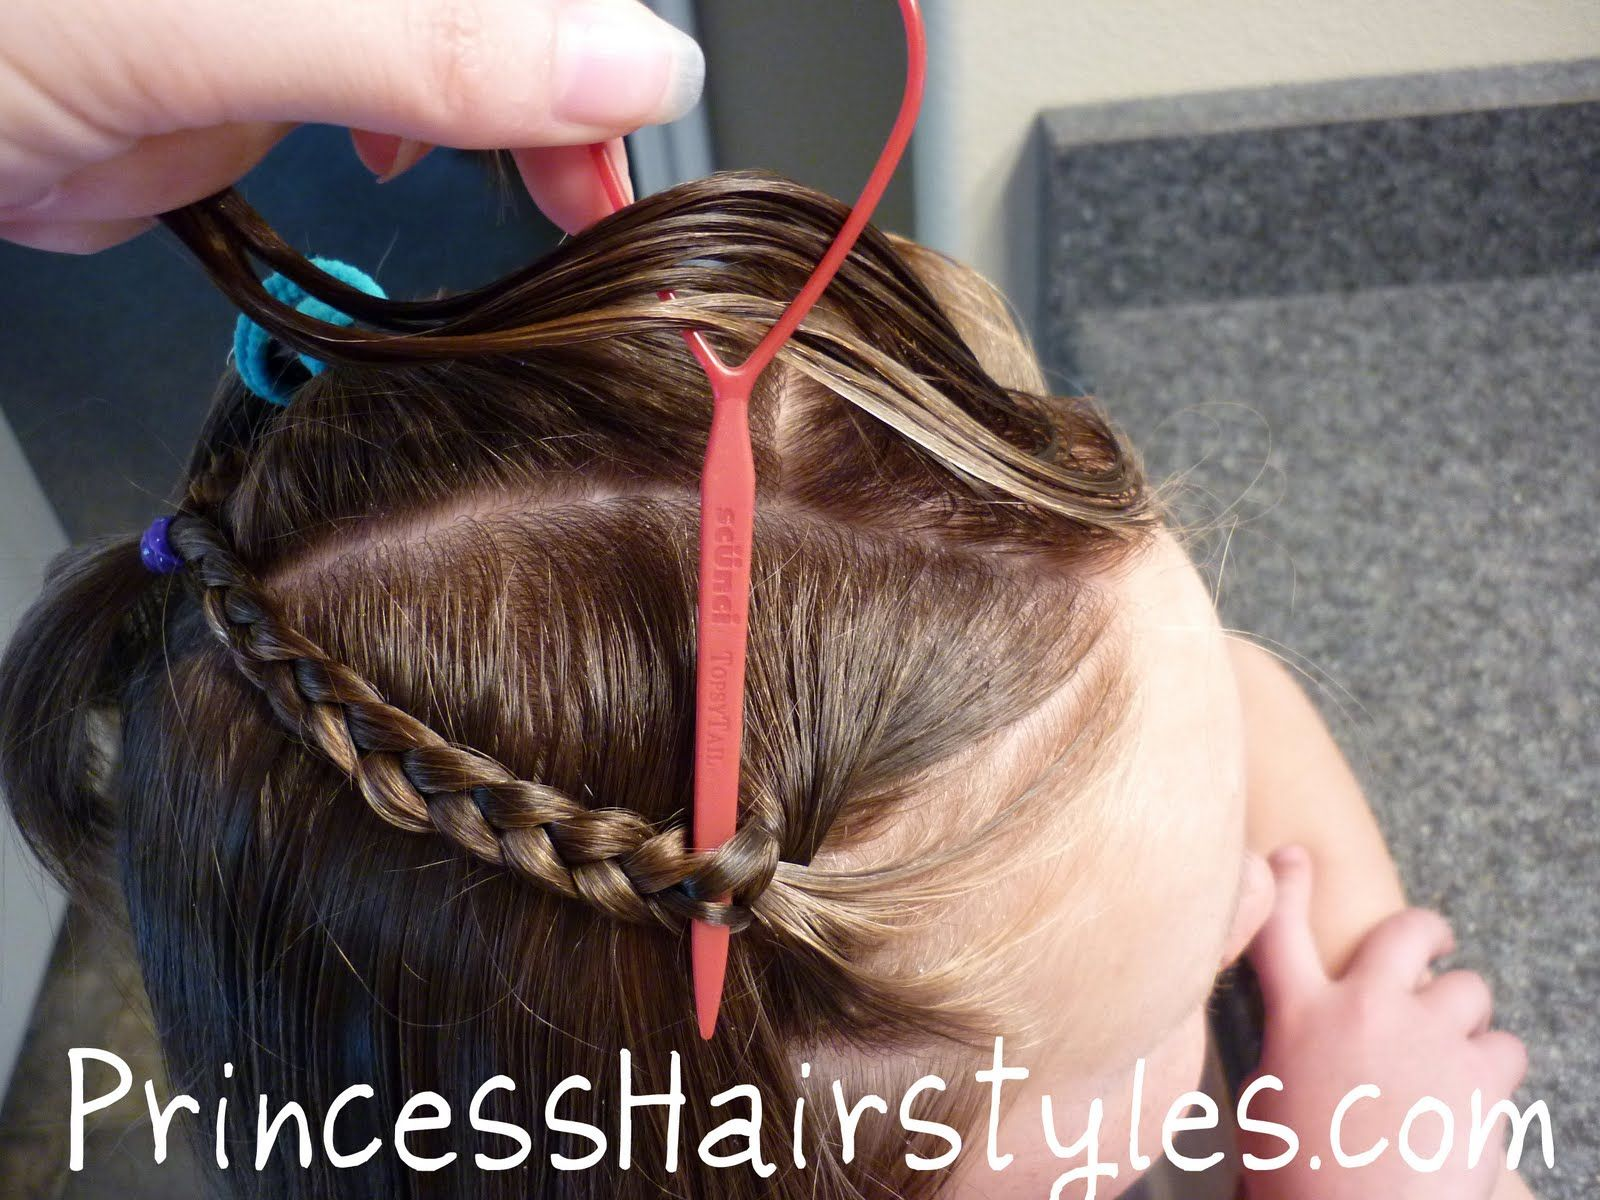 french plat hair style no braid waterfall braid princess hairstyles 6878 | 7e92971a696cbbc3025b6144c86ae6be